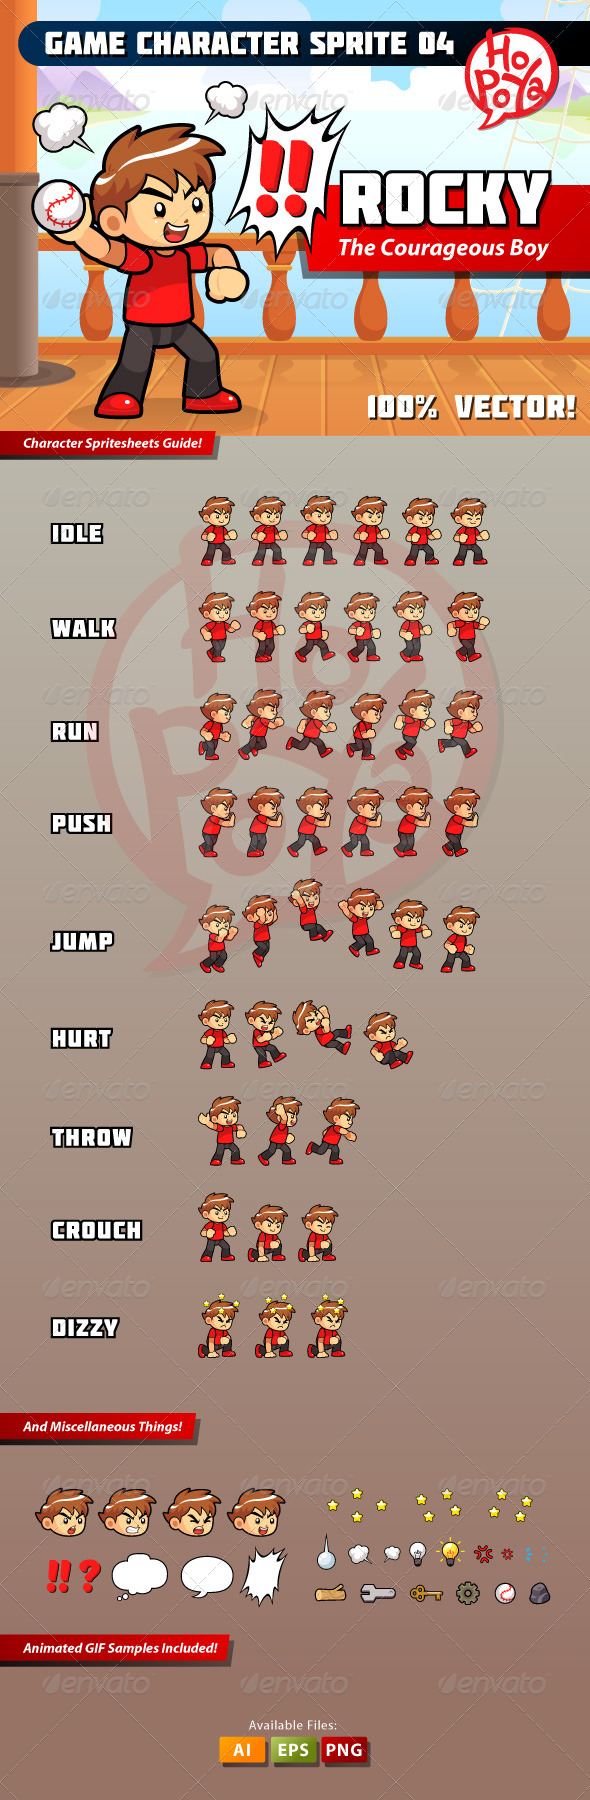 GraphicRiver Game Character Sprite 04 8713399